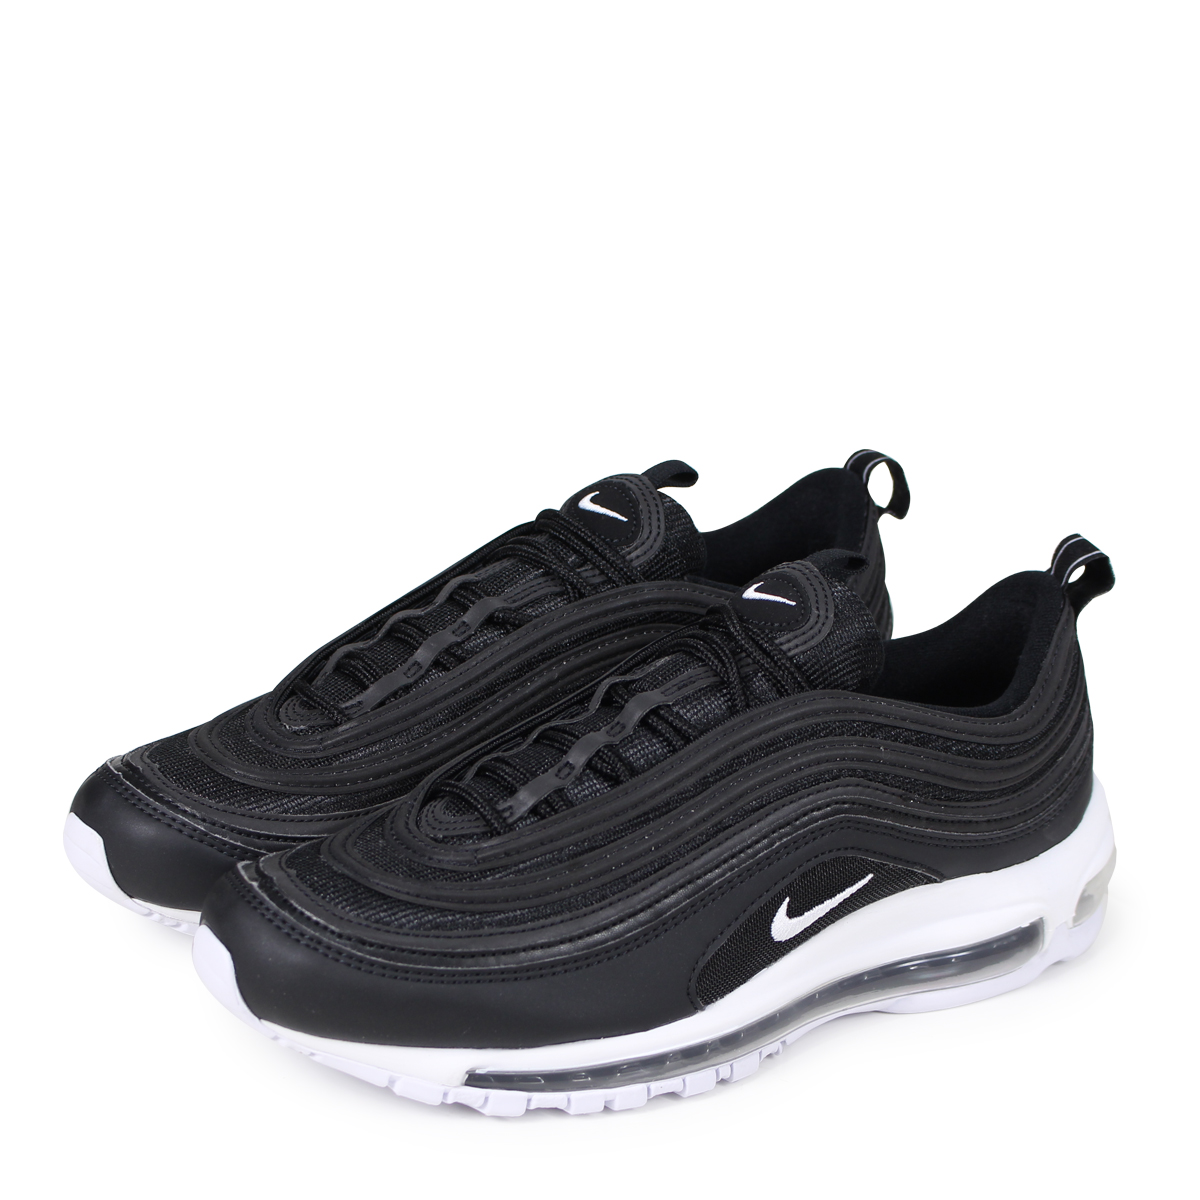 NIKE AIR MAX 97 SNEAKER LOW BLACKBLACK WHITE